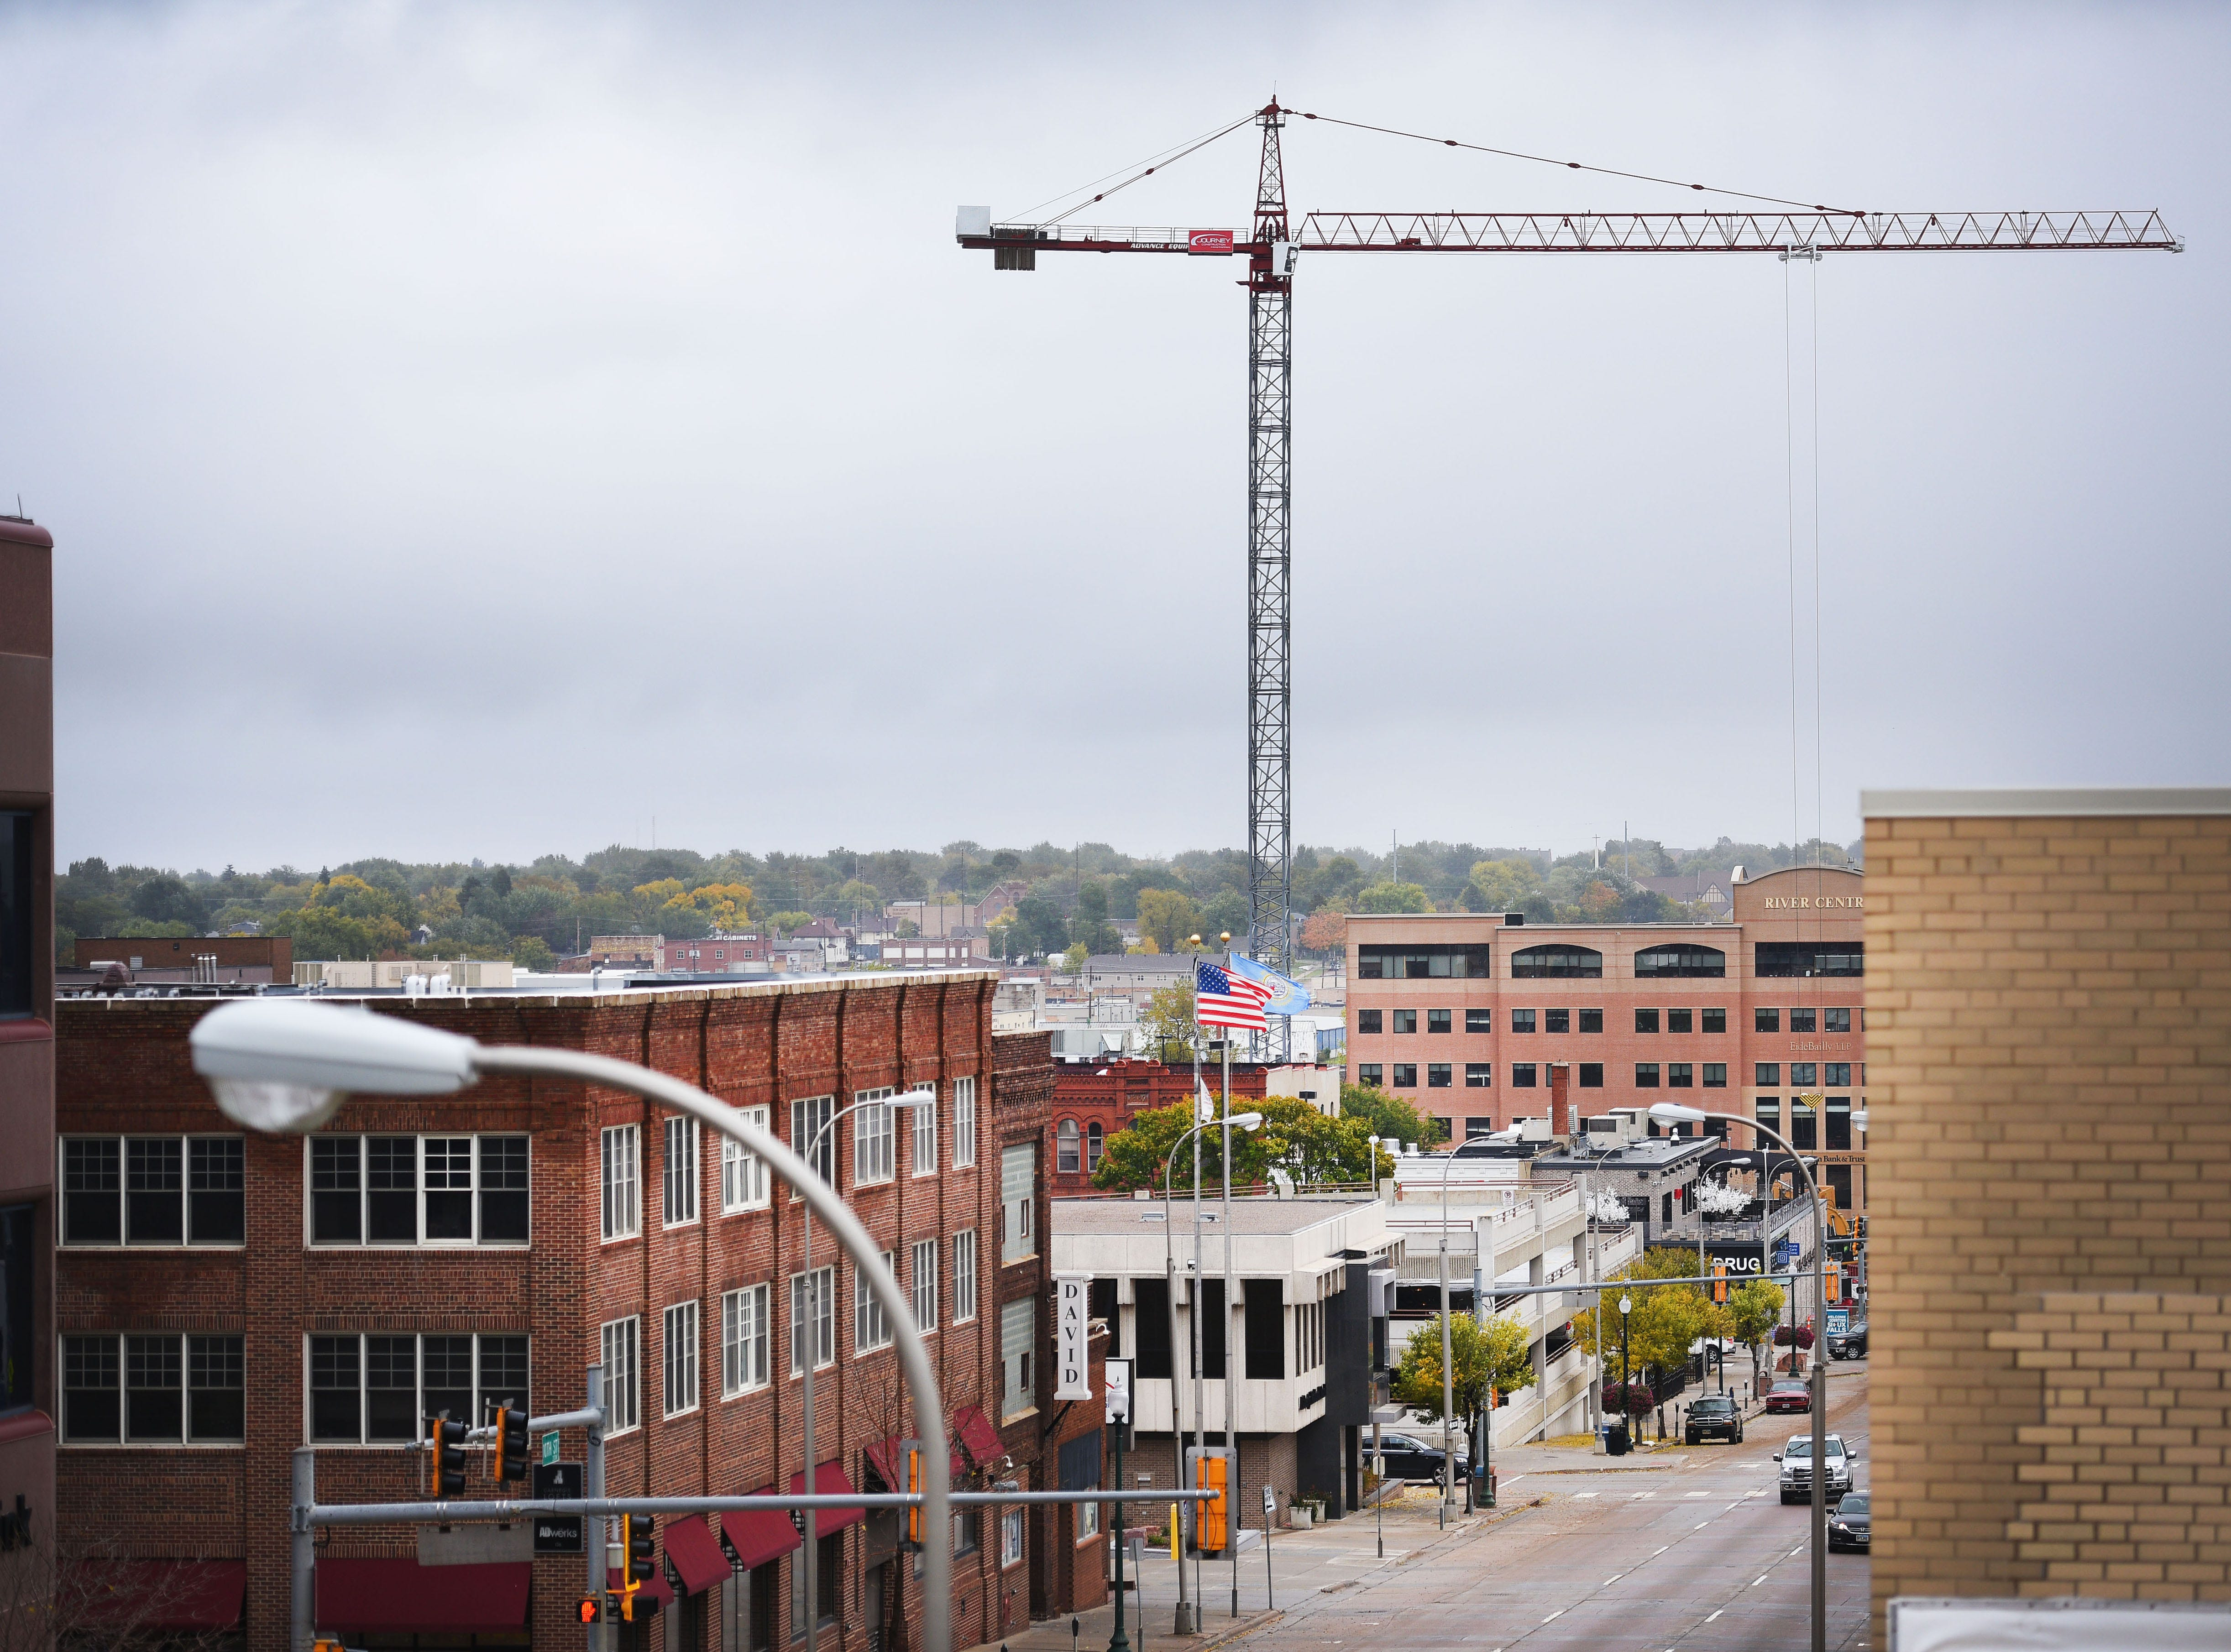 A massive crane has been erected downtown Wednesday, Oct. 10, in Sioux Falls. The crane is used to erect steel in the Village on the River mixed use parking ramp.